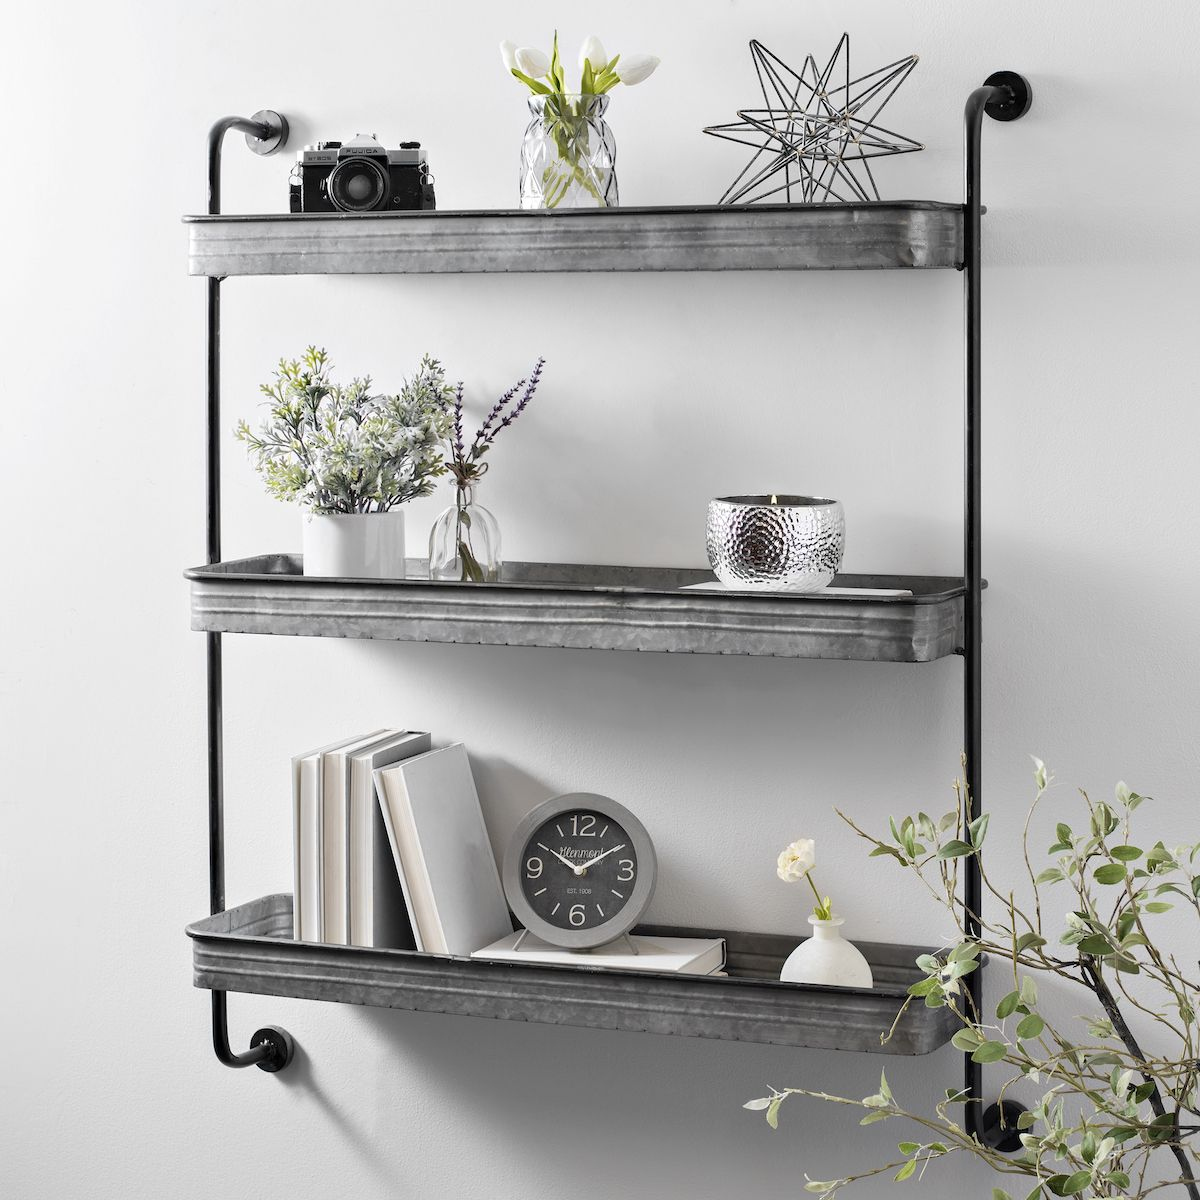 Product Details Galvanized Metal 3 Tier Wall Shelf In 2019